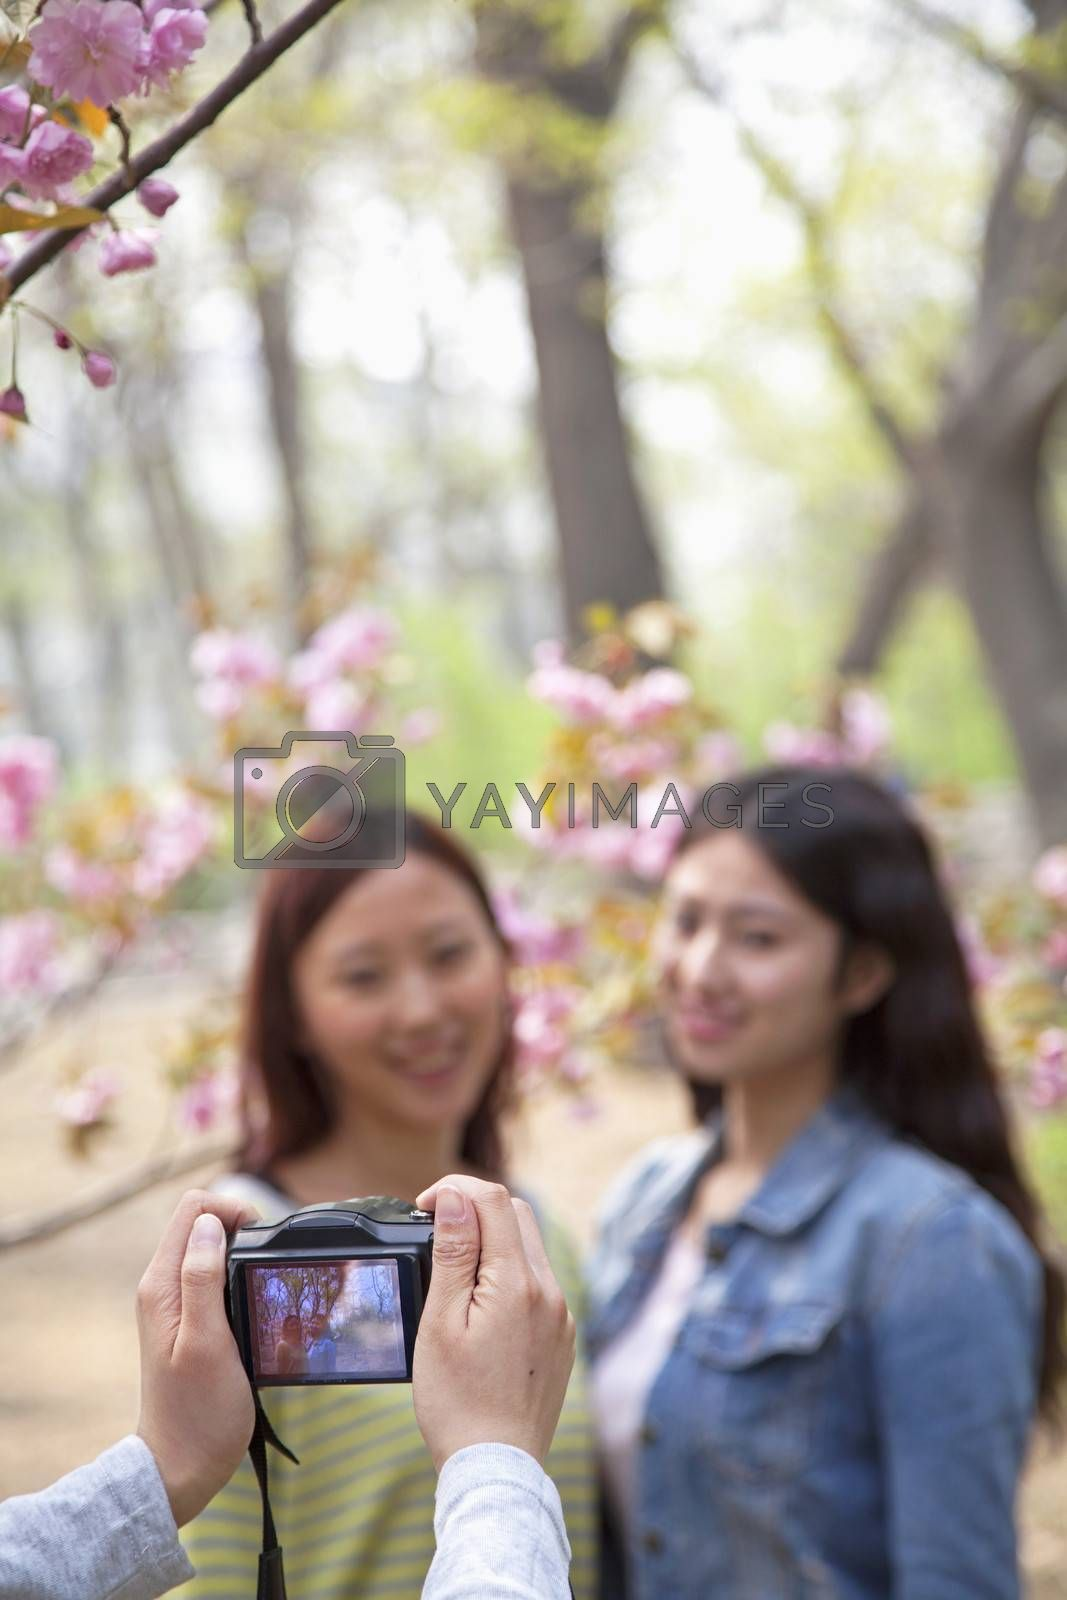 Person taking a photo of two young women outdoors in a park among the spring blossoms